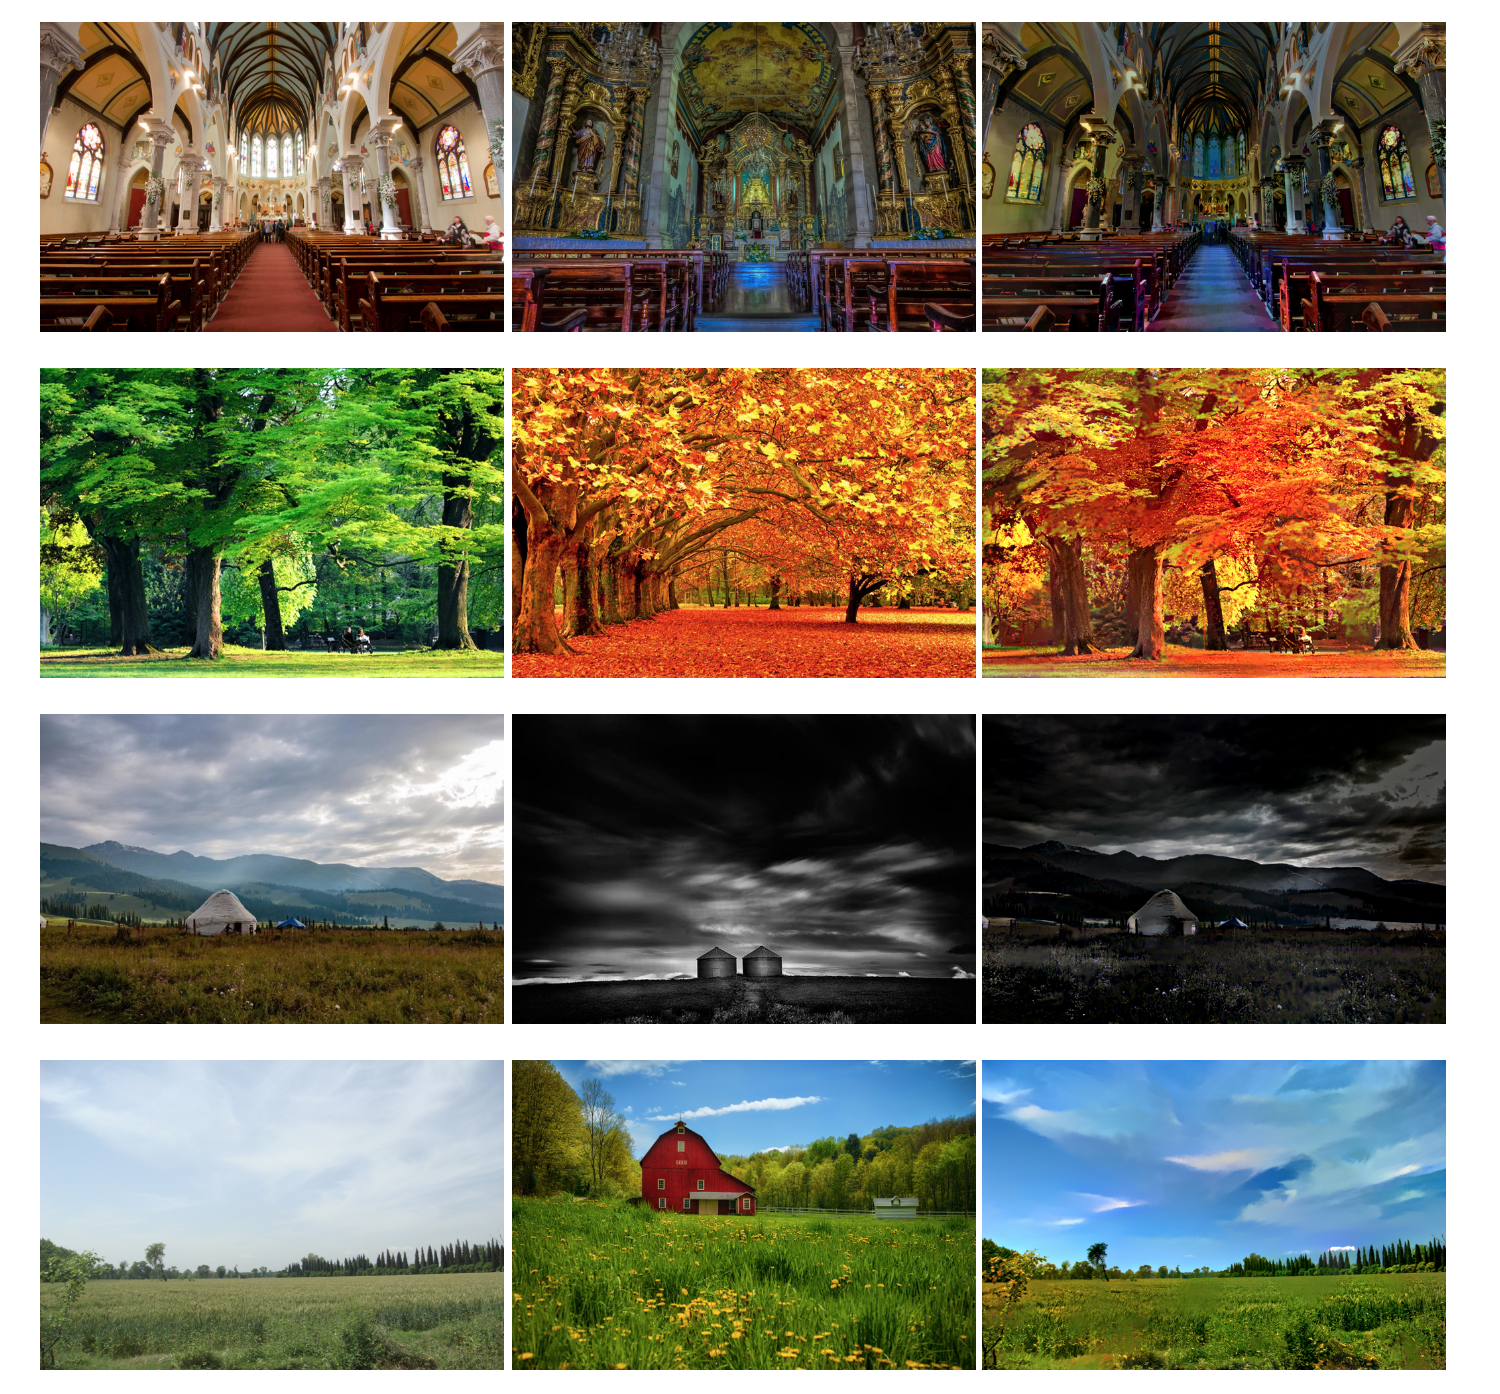 Machine Learning En Plein Air: Building accessible tools for artists